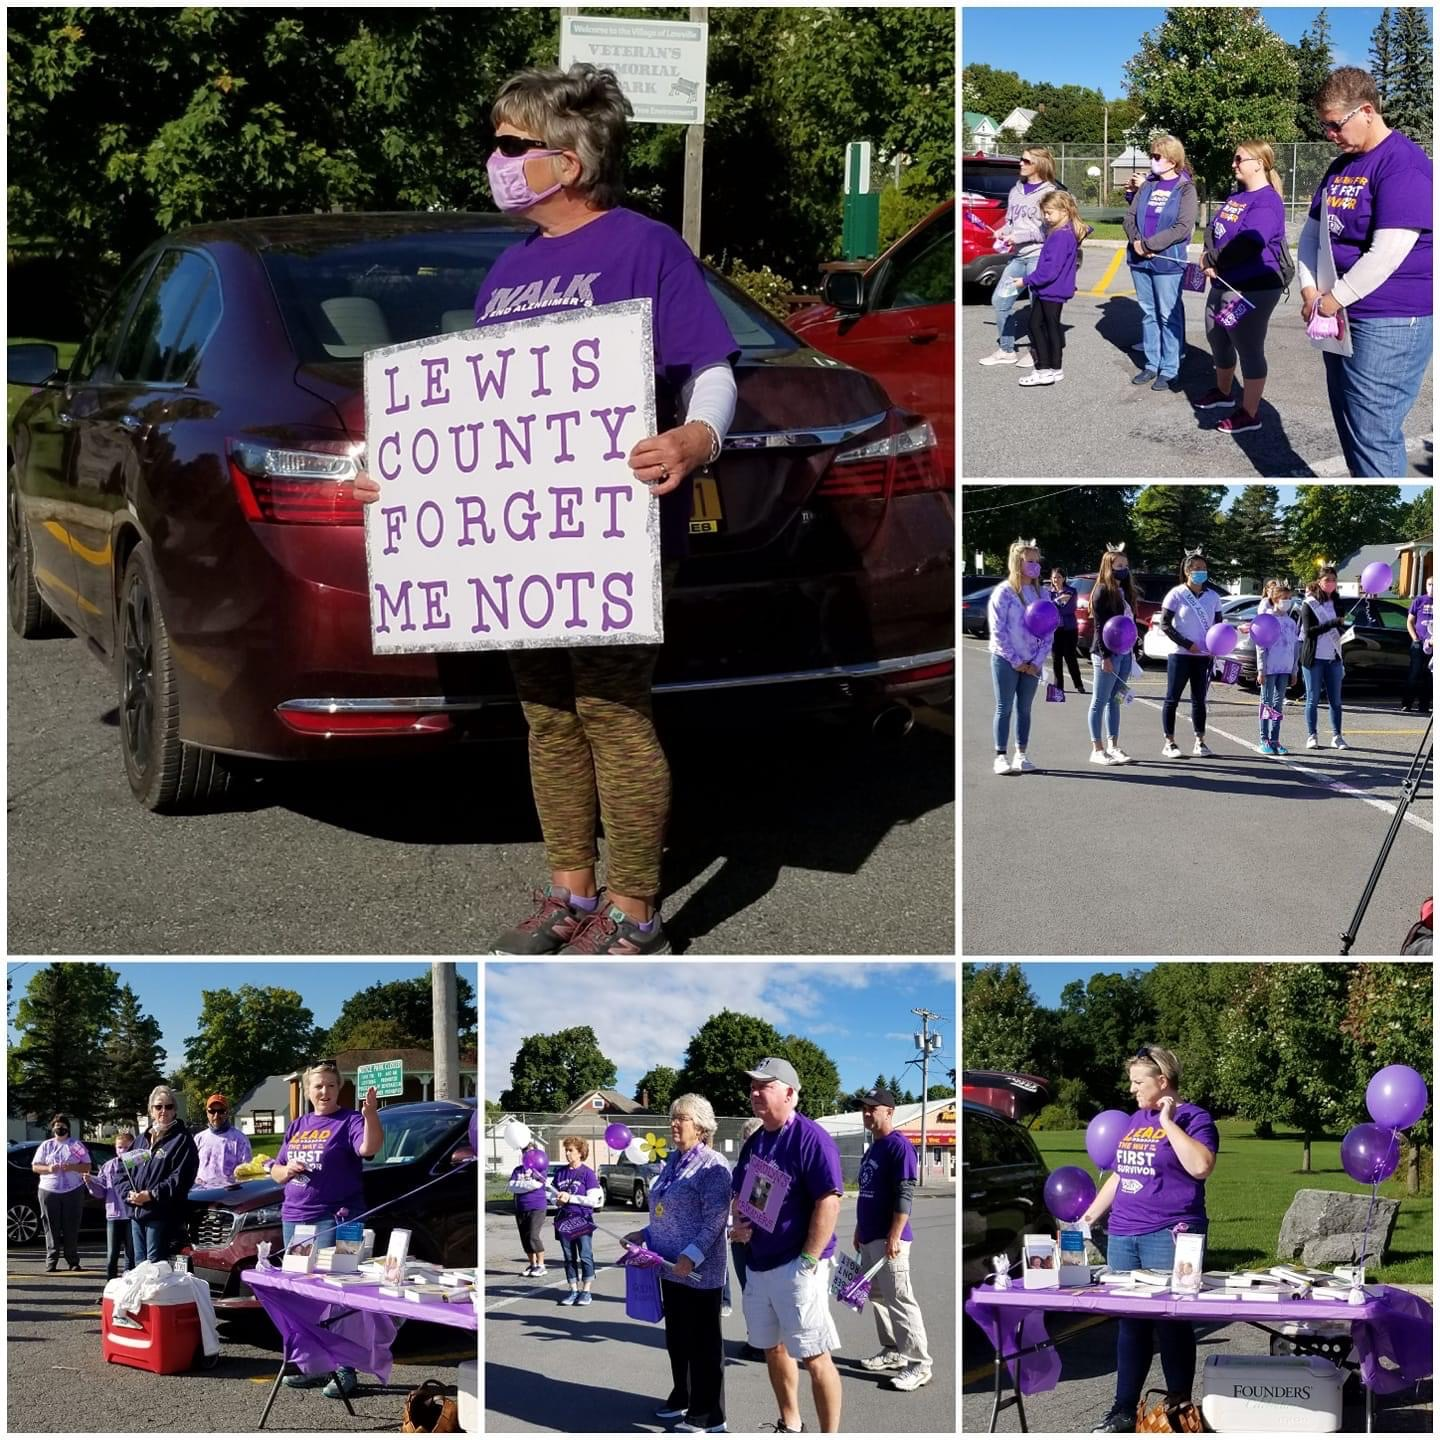 Walk to end Alzheimers pic 2020